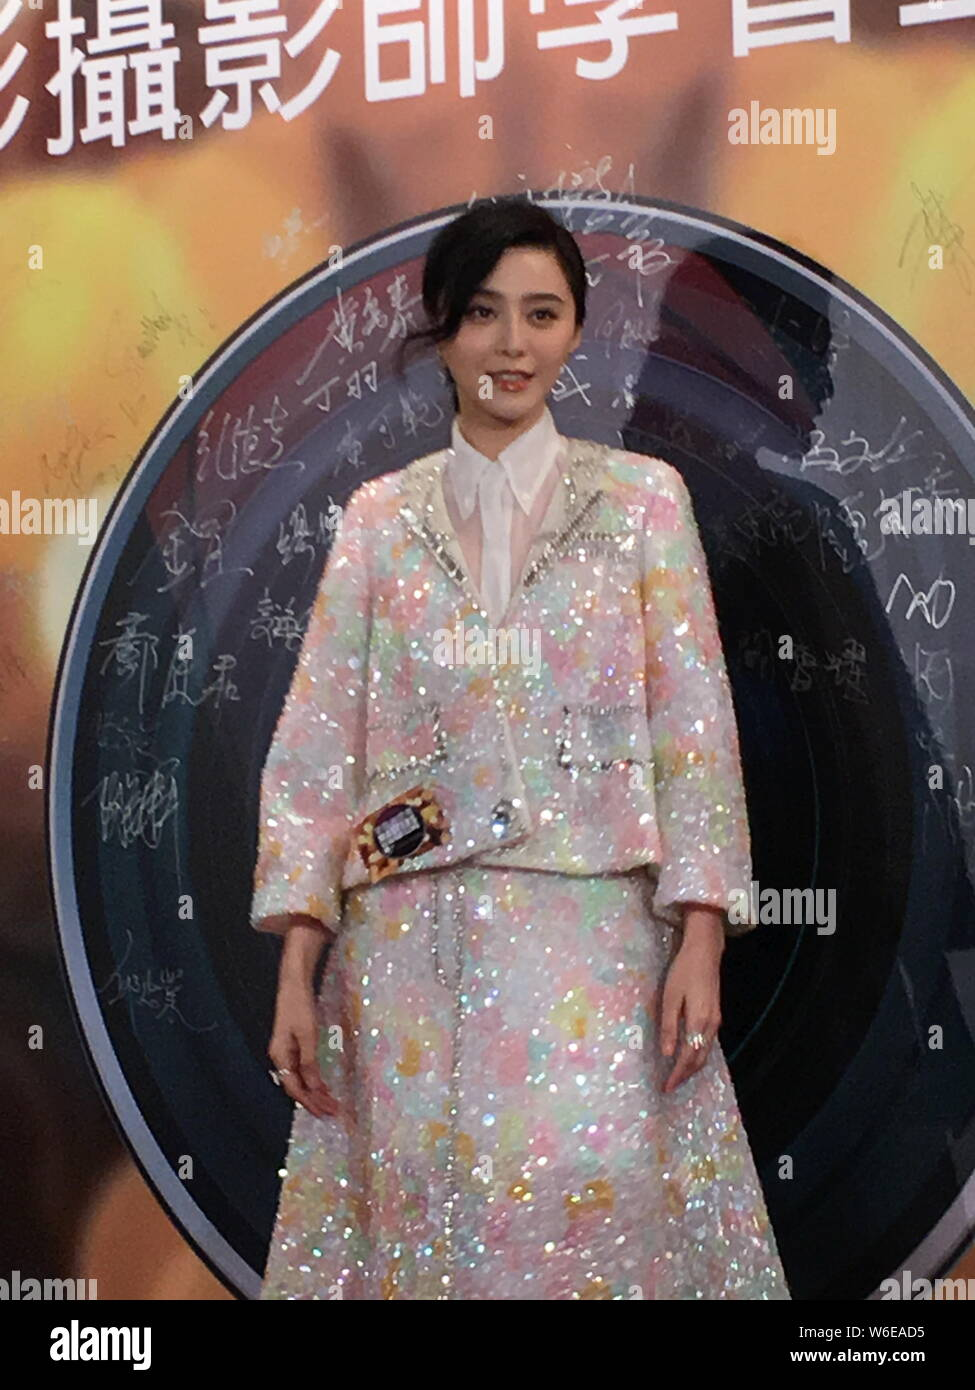 Chinese actress Fan Bingbing attends a banquet event held by Hong Kong Society of Cinematographers (HKSC) in Hong Kong, China, 5 March 2018. Stock Photo